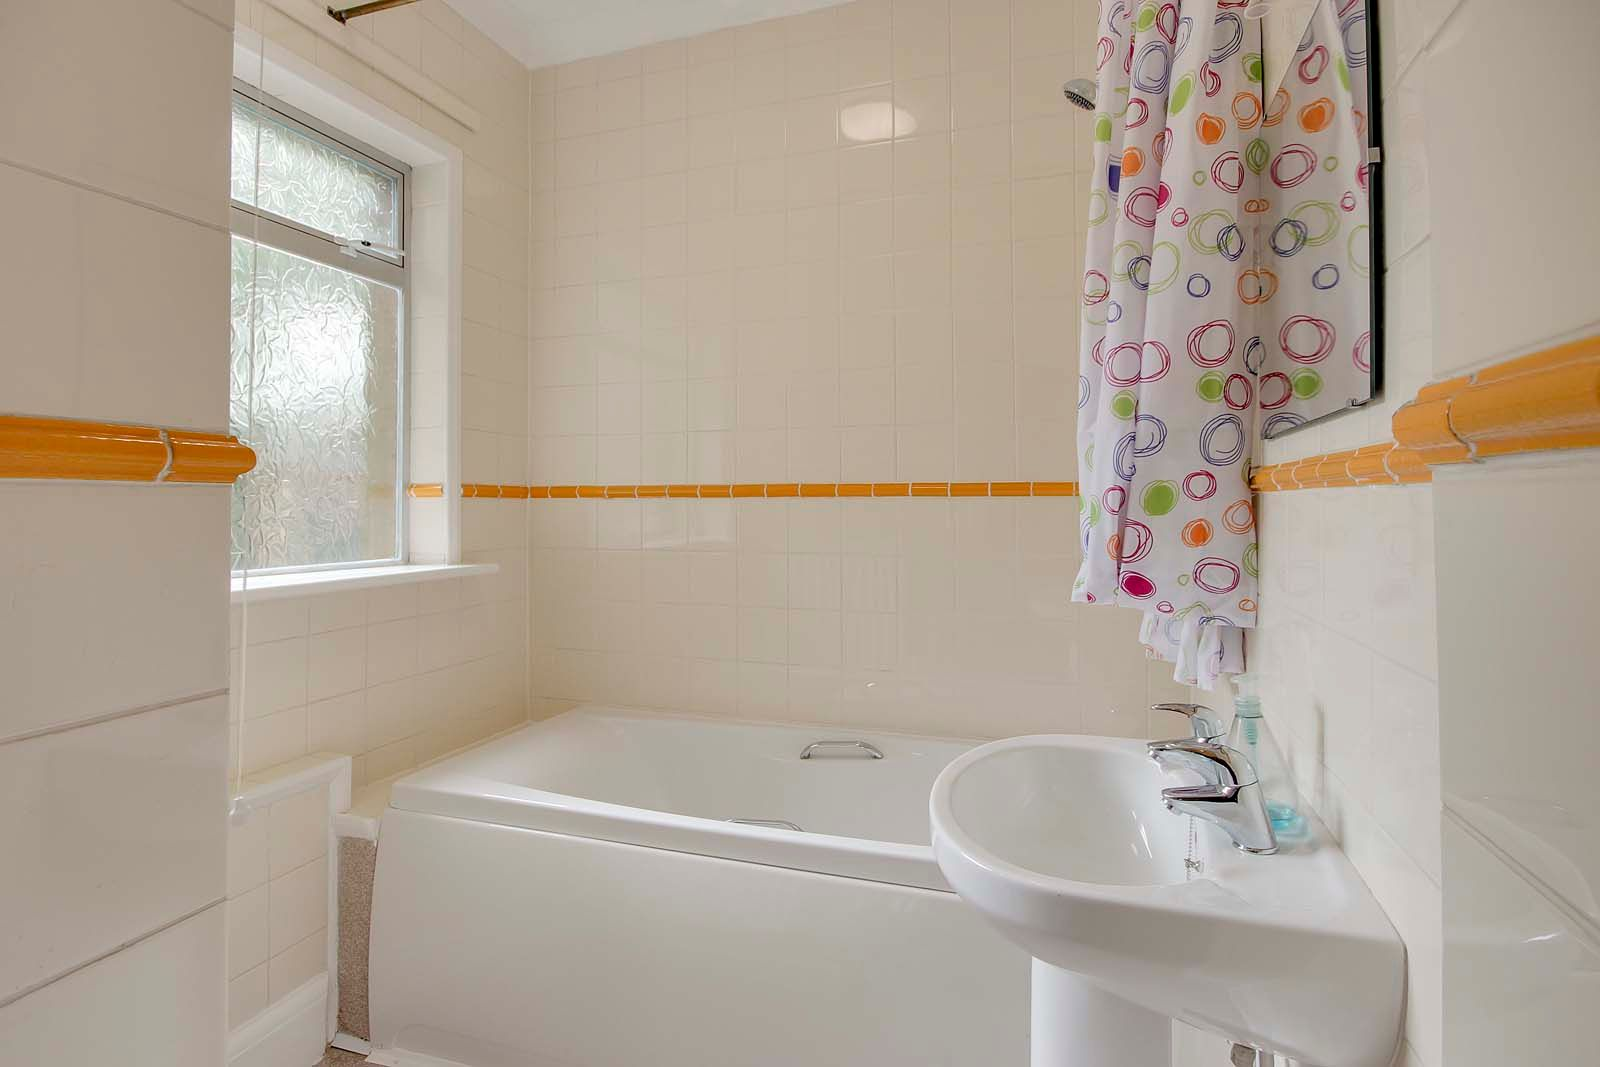 2 bed Apartment to rent in Worthing - Bathroom (Property Image 8)